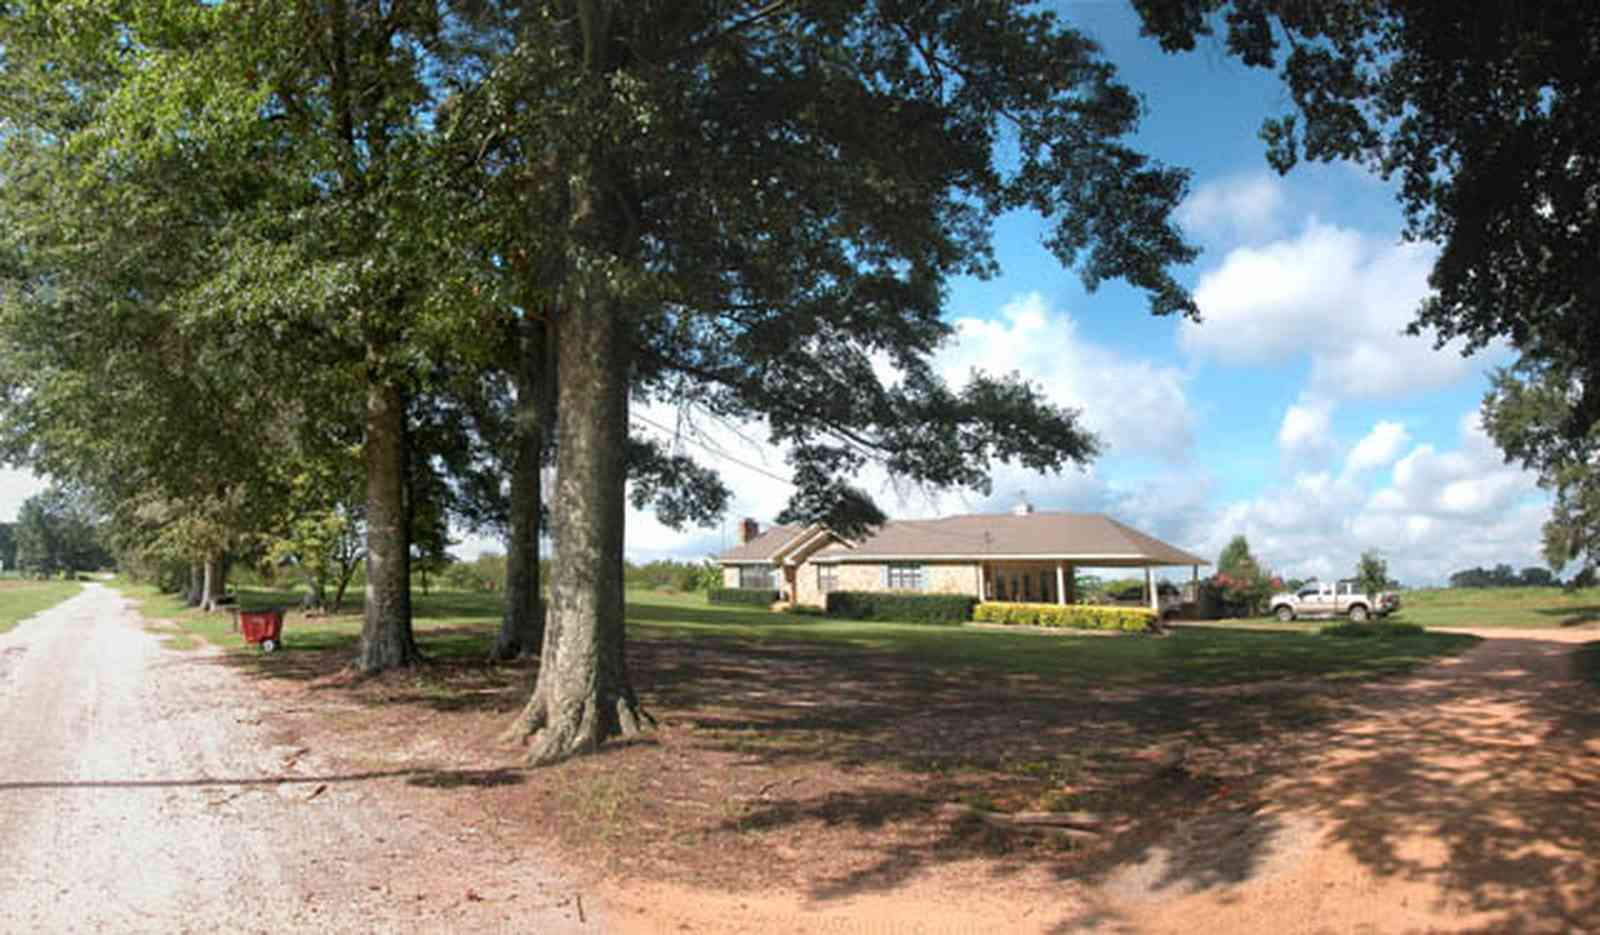 Hollandtown:-Holland-Farm:-South-Field_05.jpg:  water oak trees, farmhouse, truck, dirt road, country road, farm, farmer